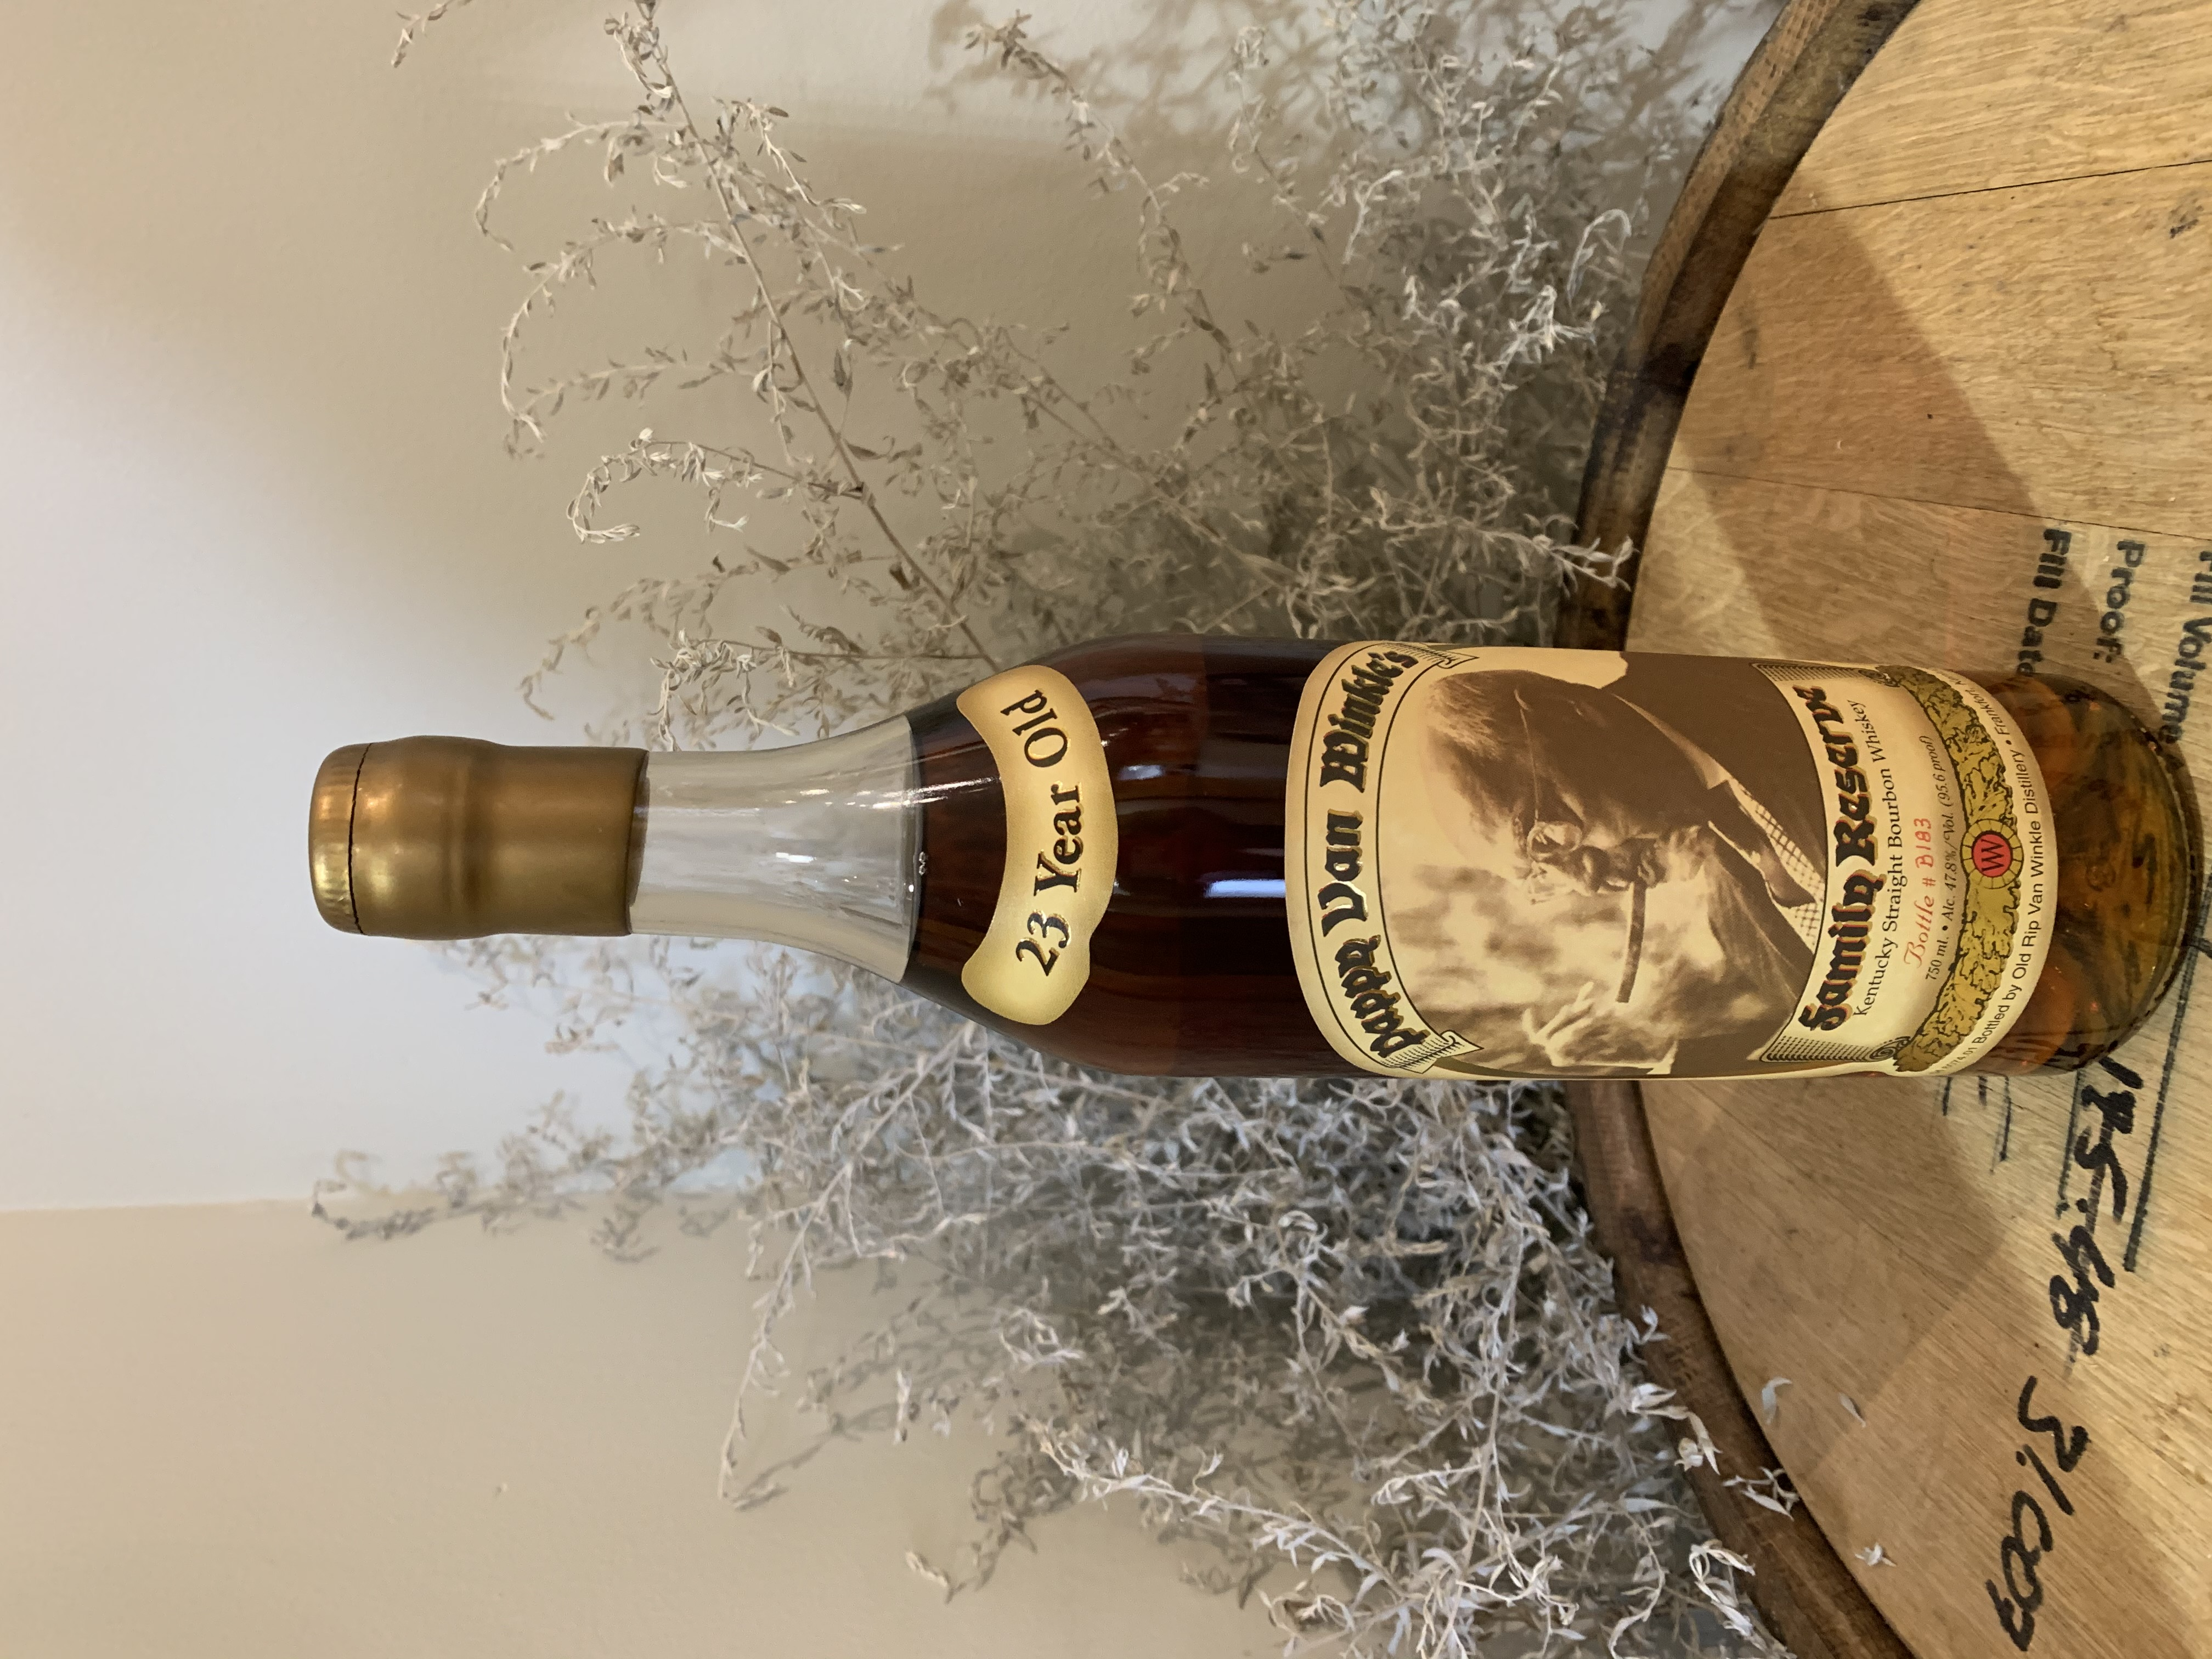 Pappy Van Winkle Family Reserve 23 Year Old Gold Wax Bottle B183 2005